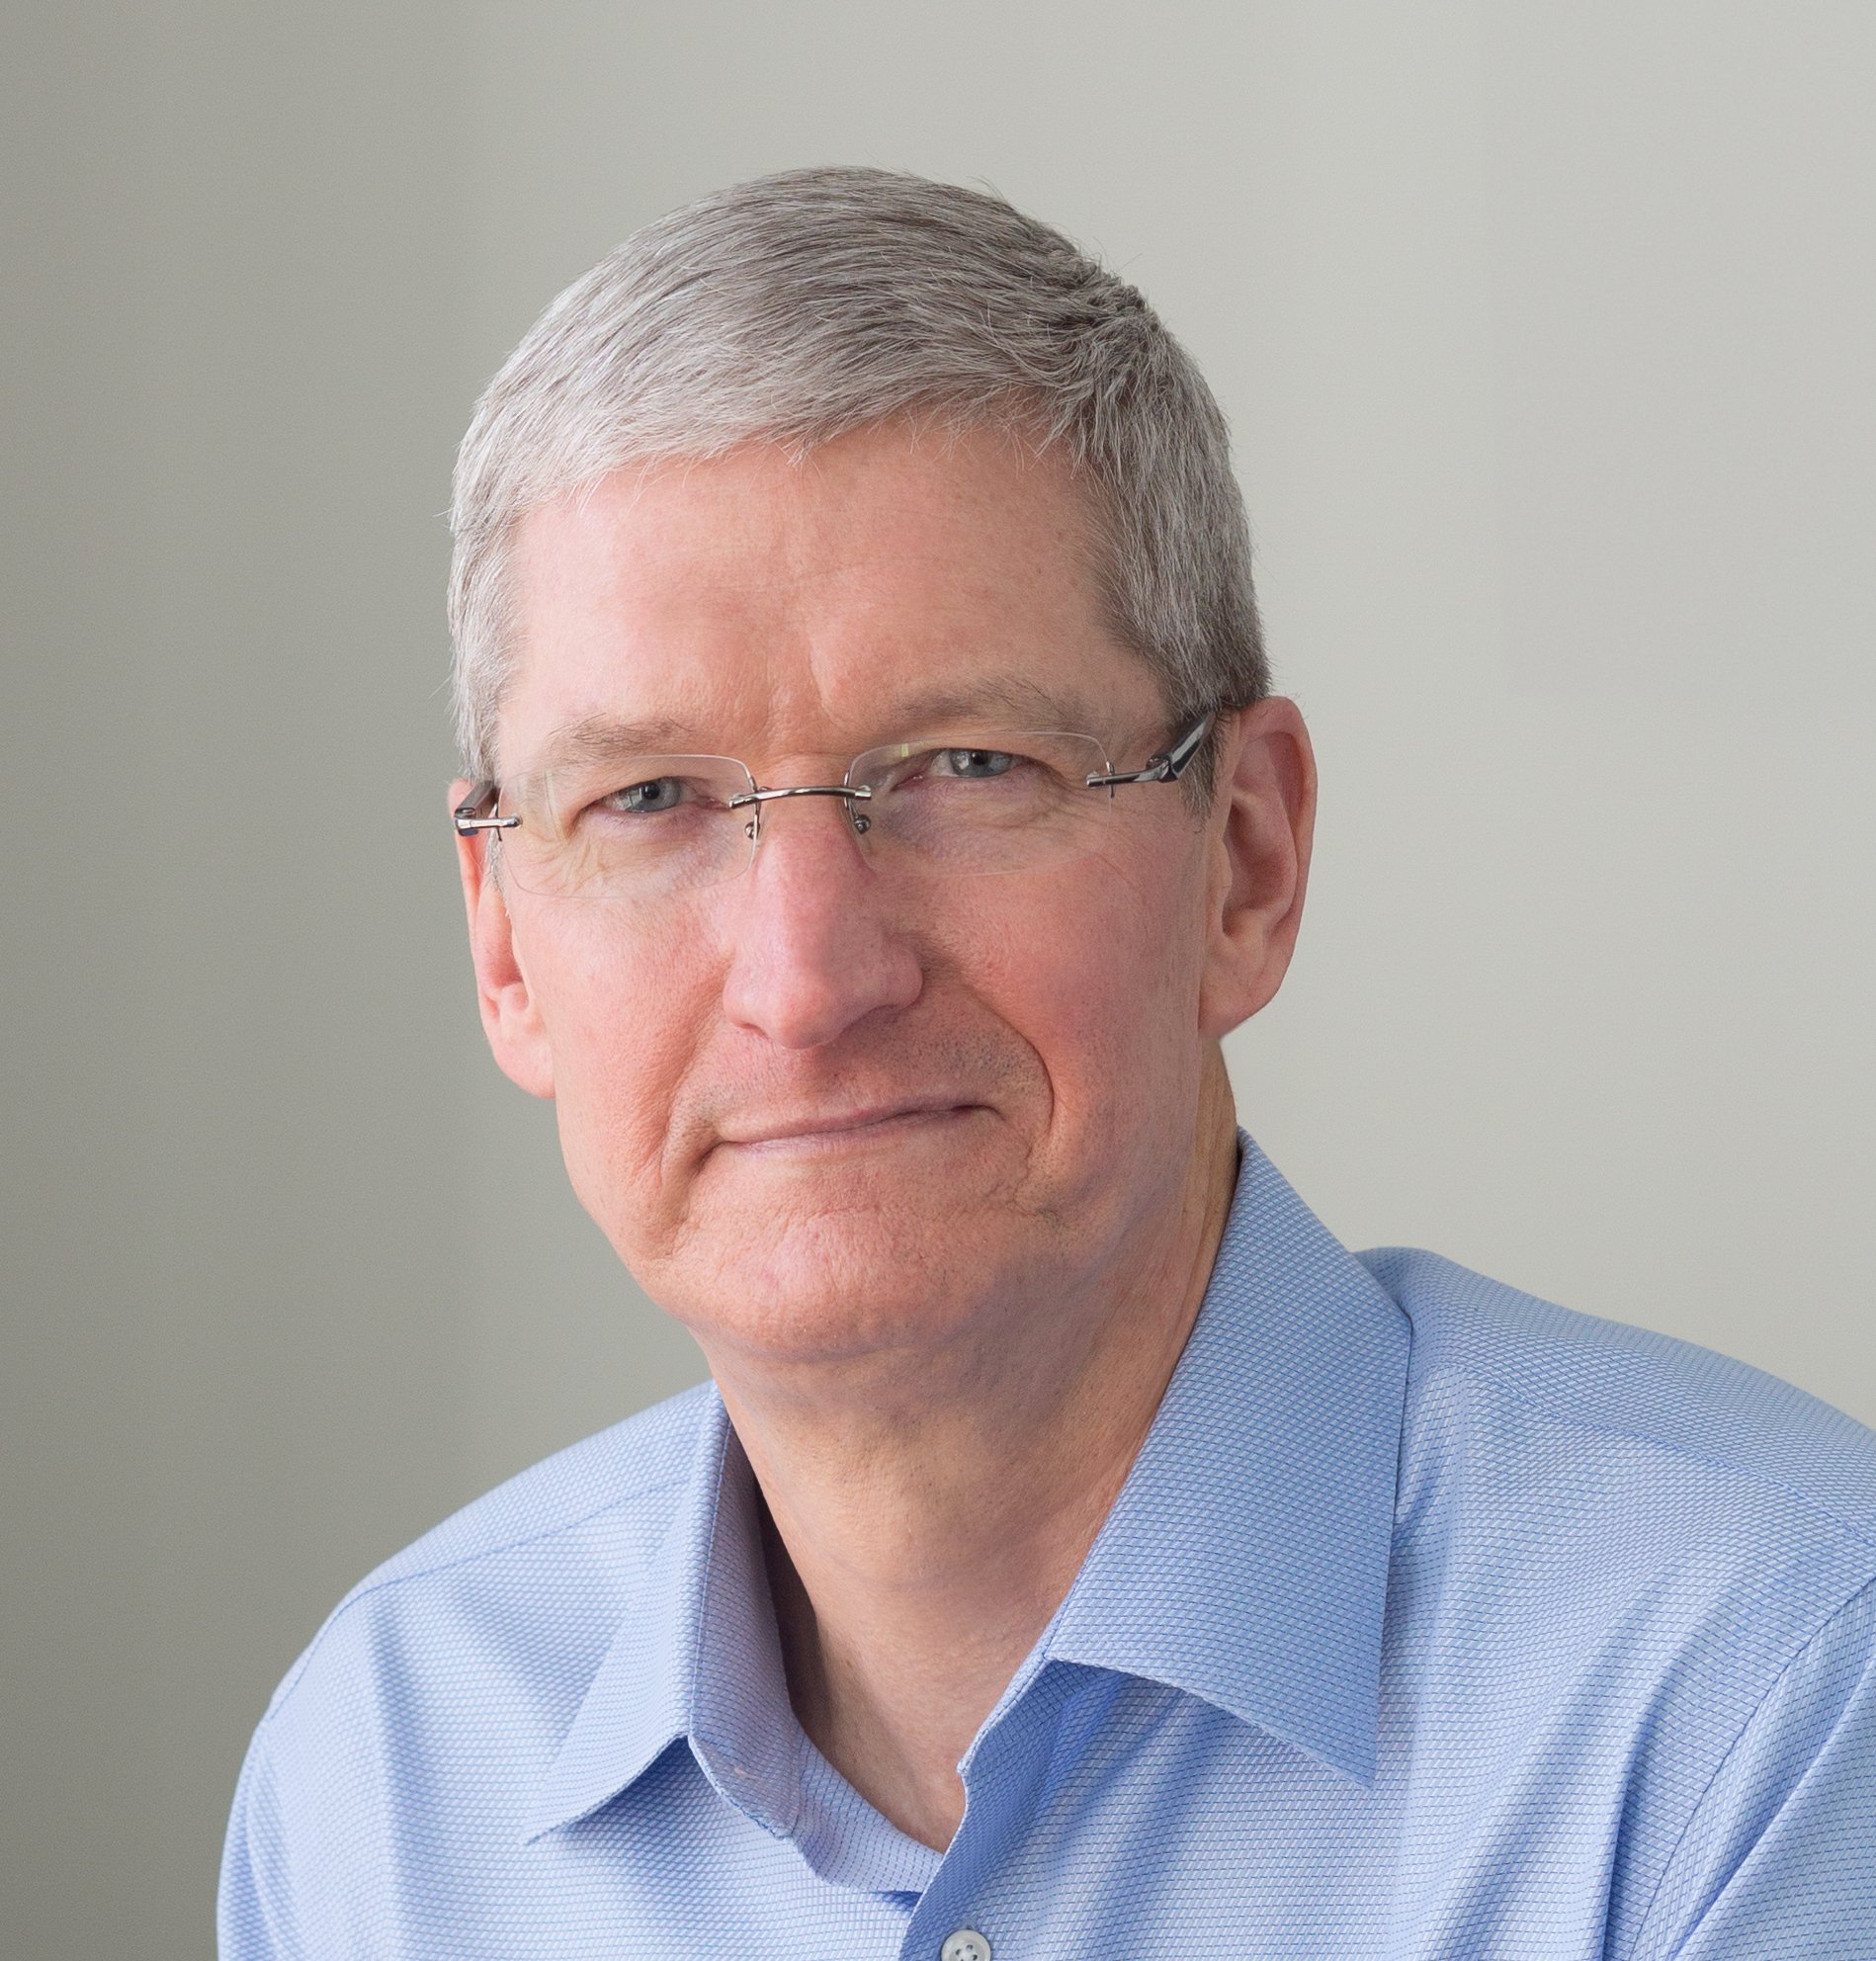 Retrato de Tim Cook (foto do Robert F. Kennedy Human Rights)